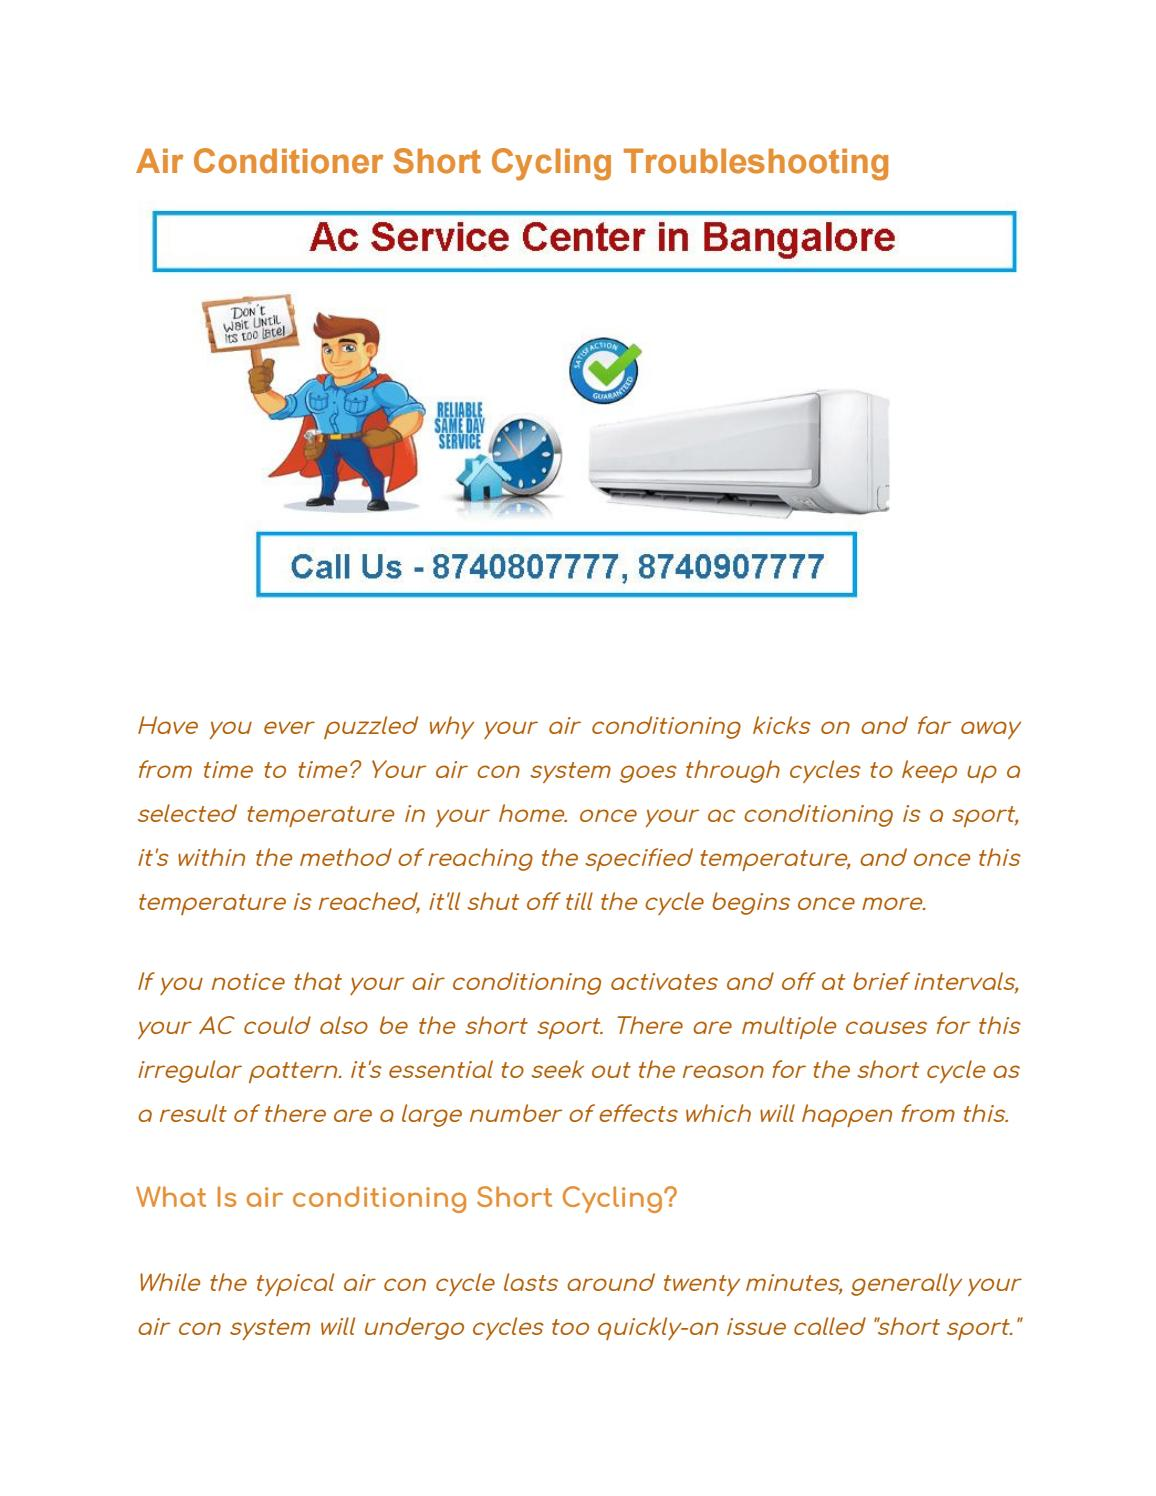 Air Conditioner Short Cycling Troubleshooting by indiarepairs - issuu